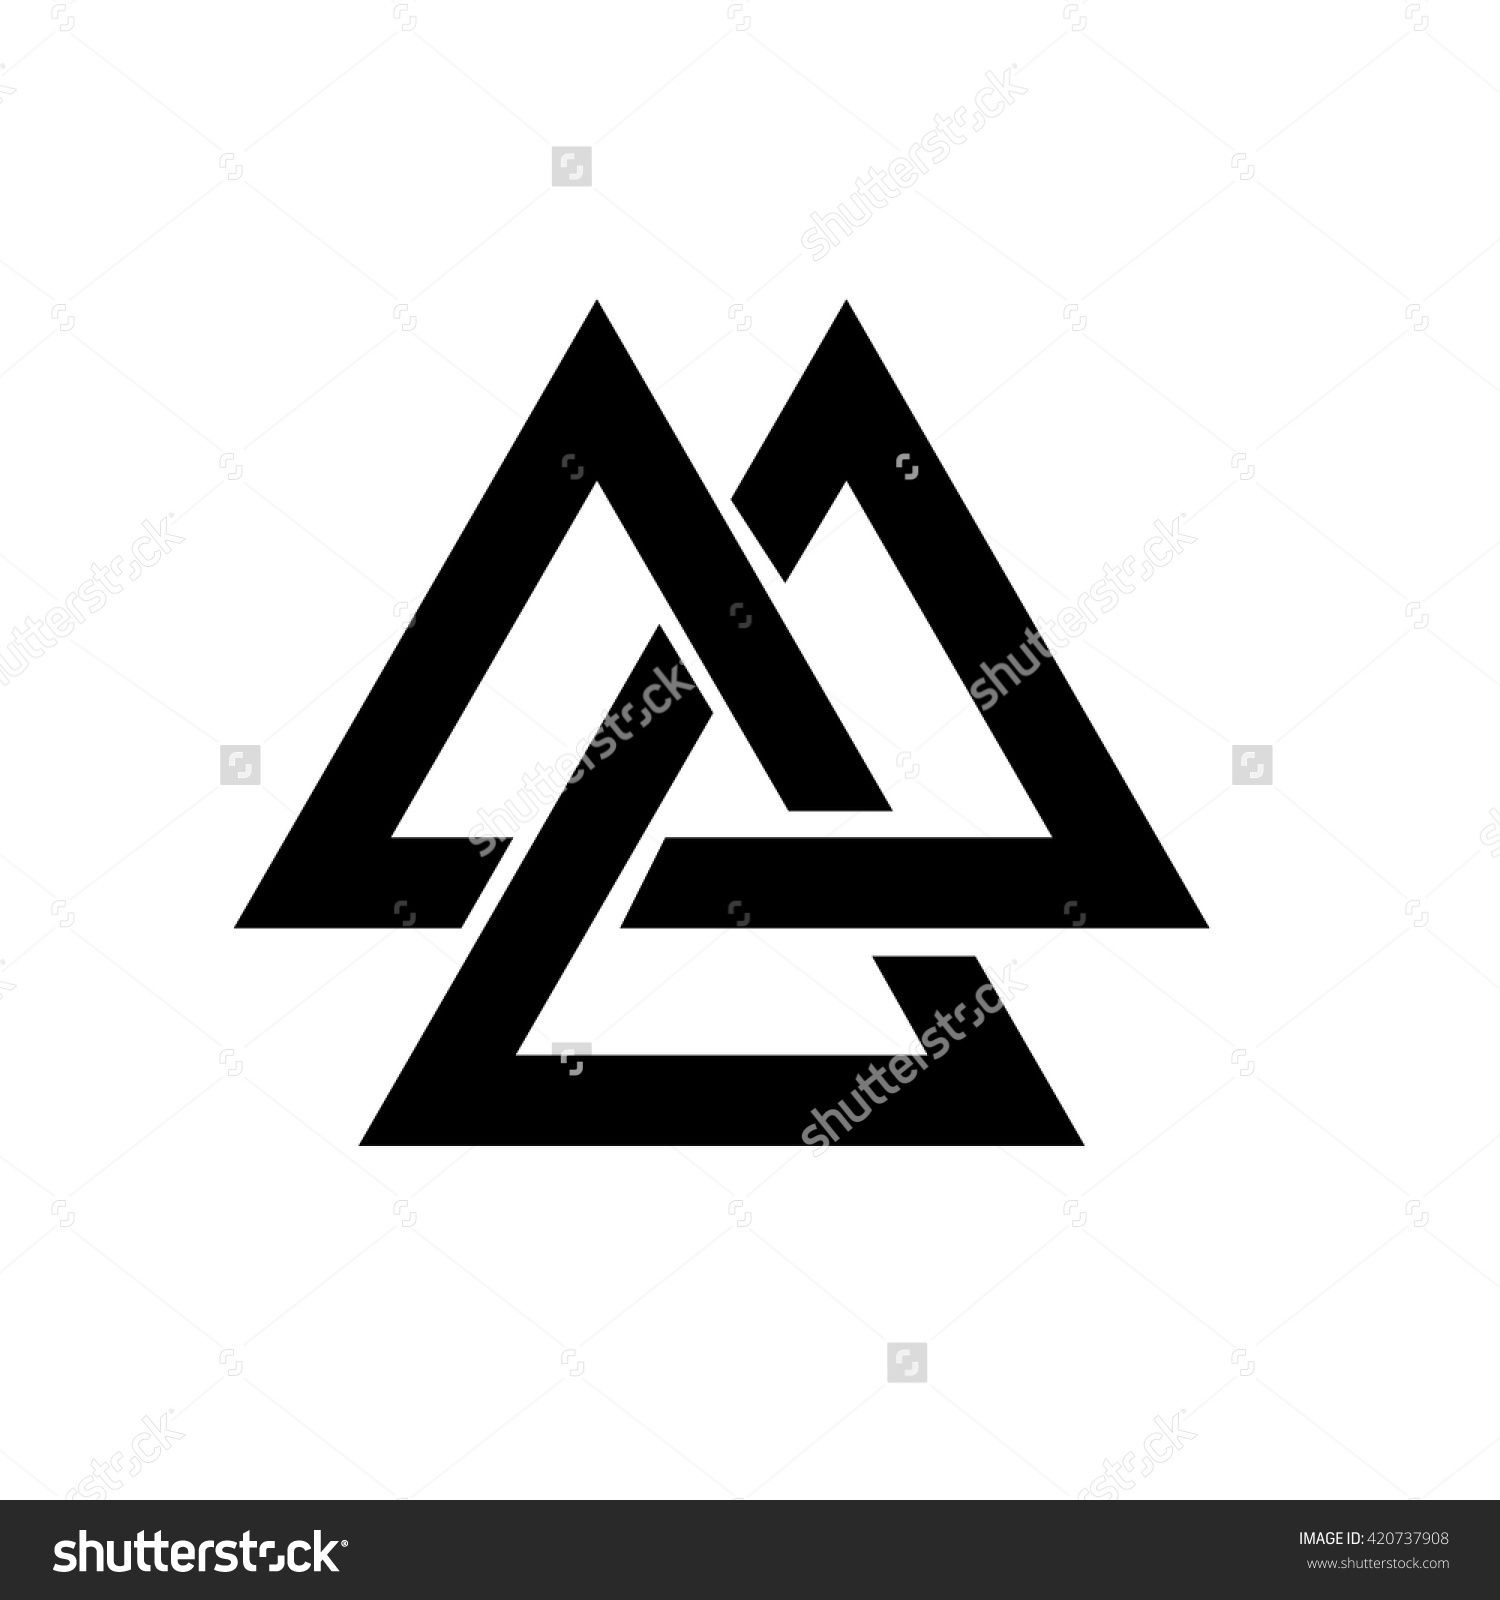 Triangle logo valknut is a viking age symbol which representing valknut is a viking age symbol which representing norse warrior culture stock vector buy this stock vector on shutterstock find other images biocorpaavc